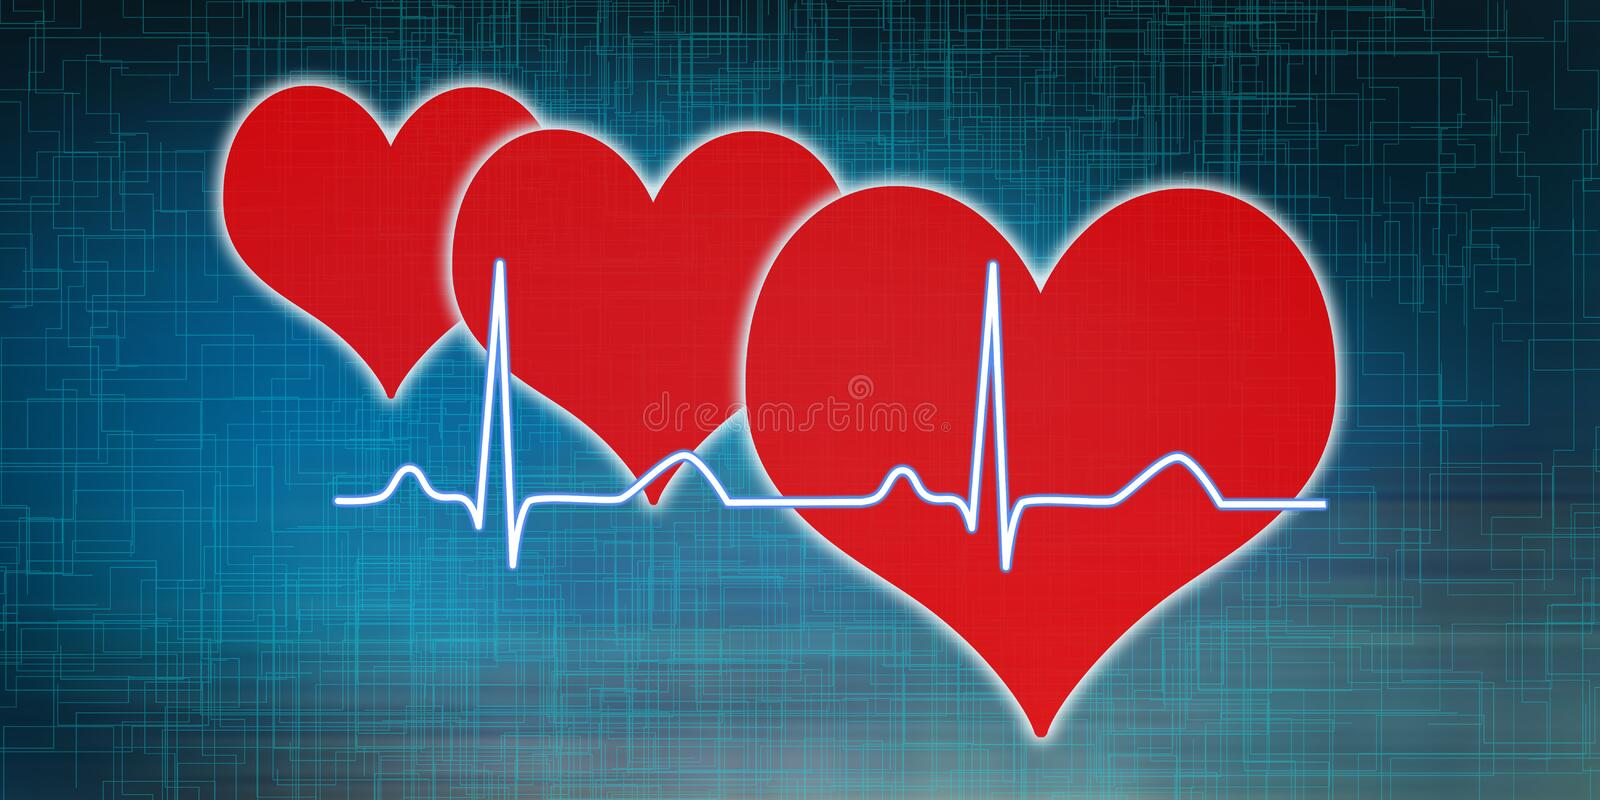 Concept of heart beats graph vector illustration